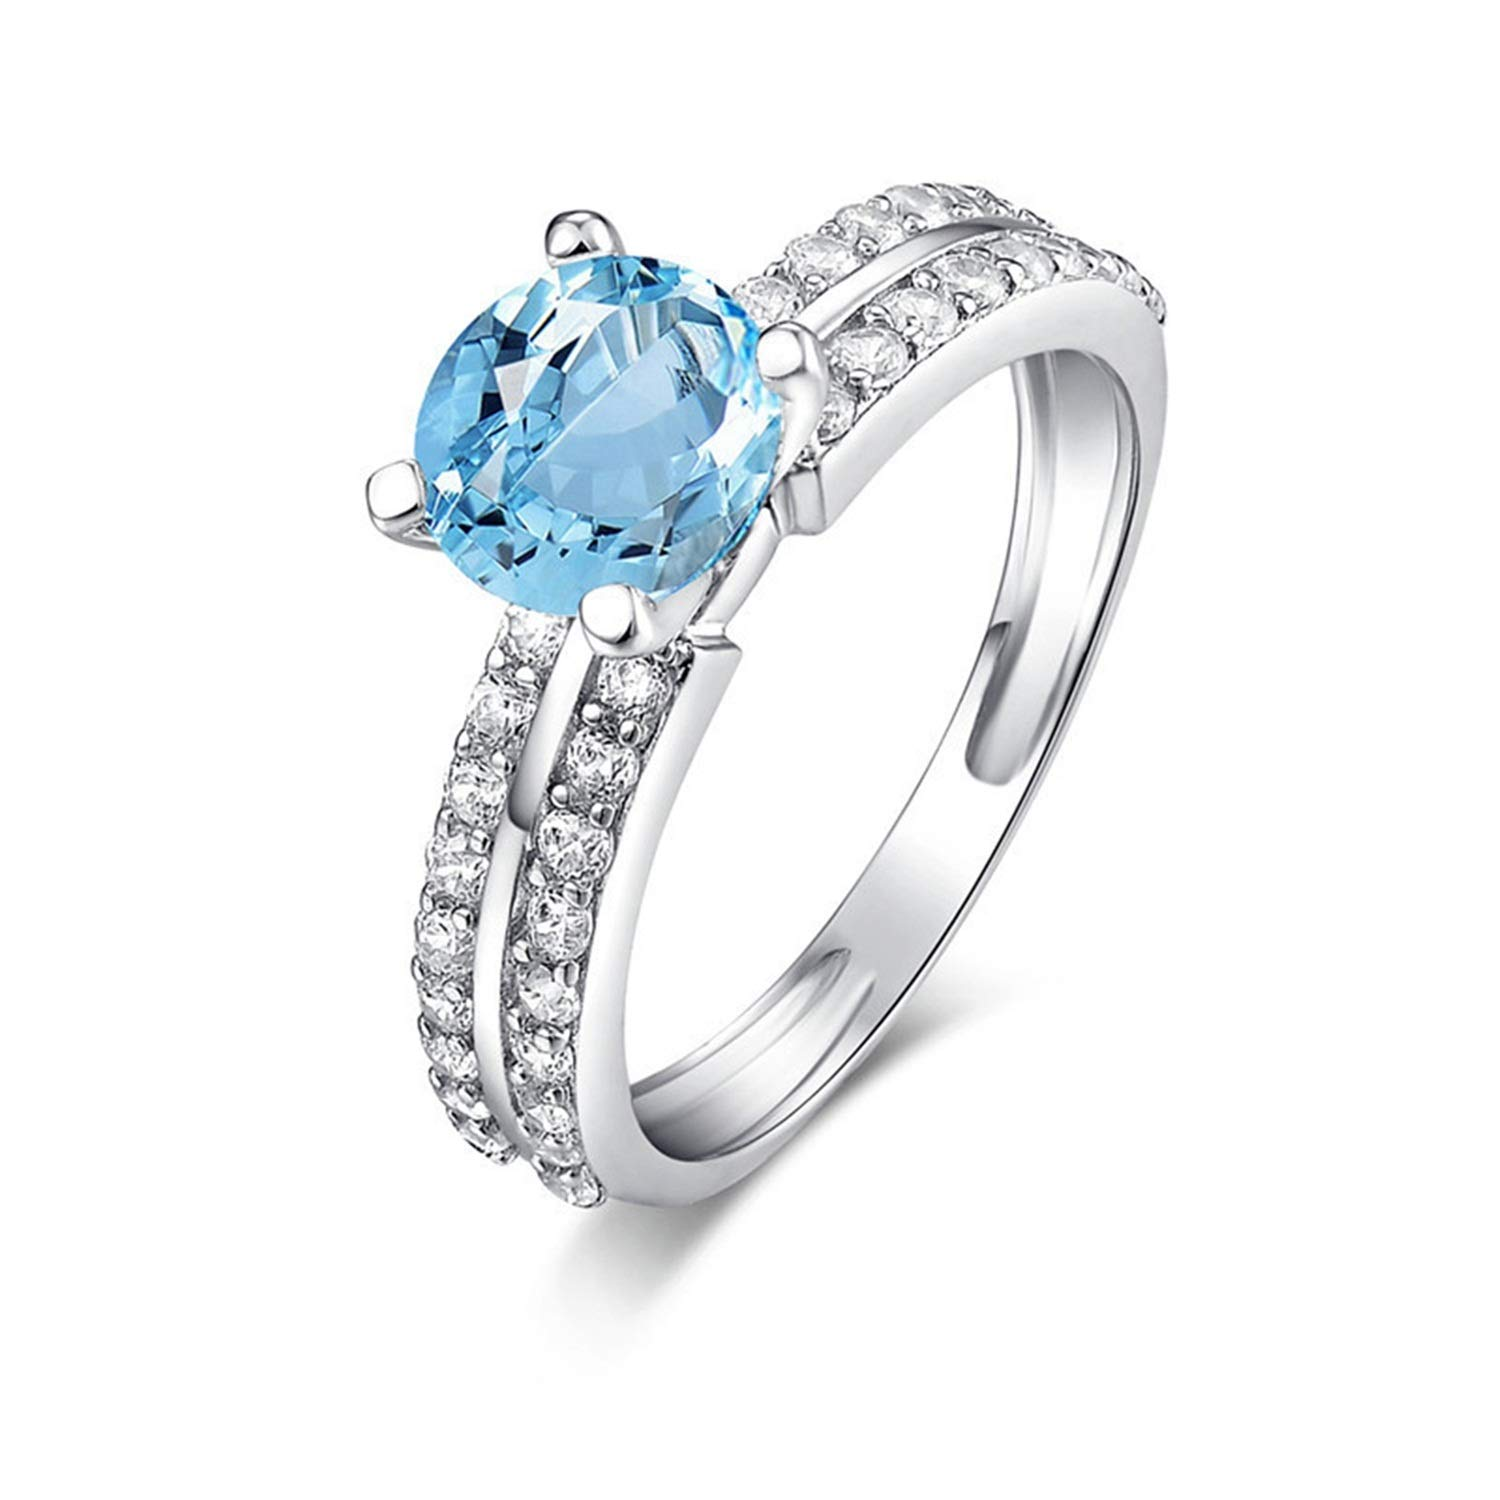 AMDXD Jewelry 925 Sterling Silver Anniversary Rings for Women Blue Round Cut Topaz Ring